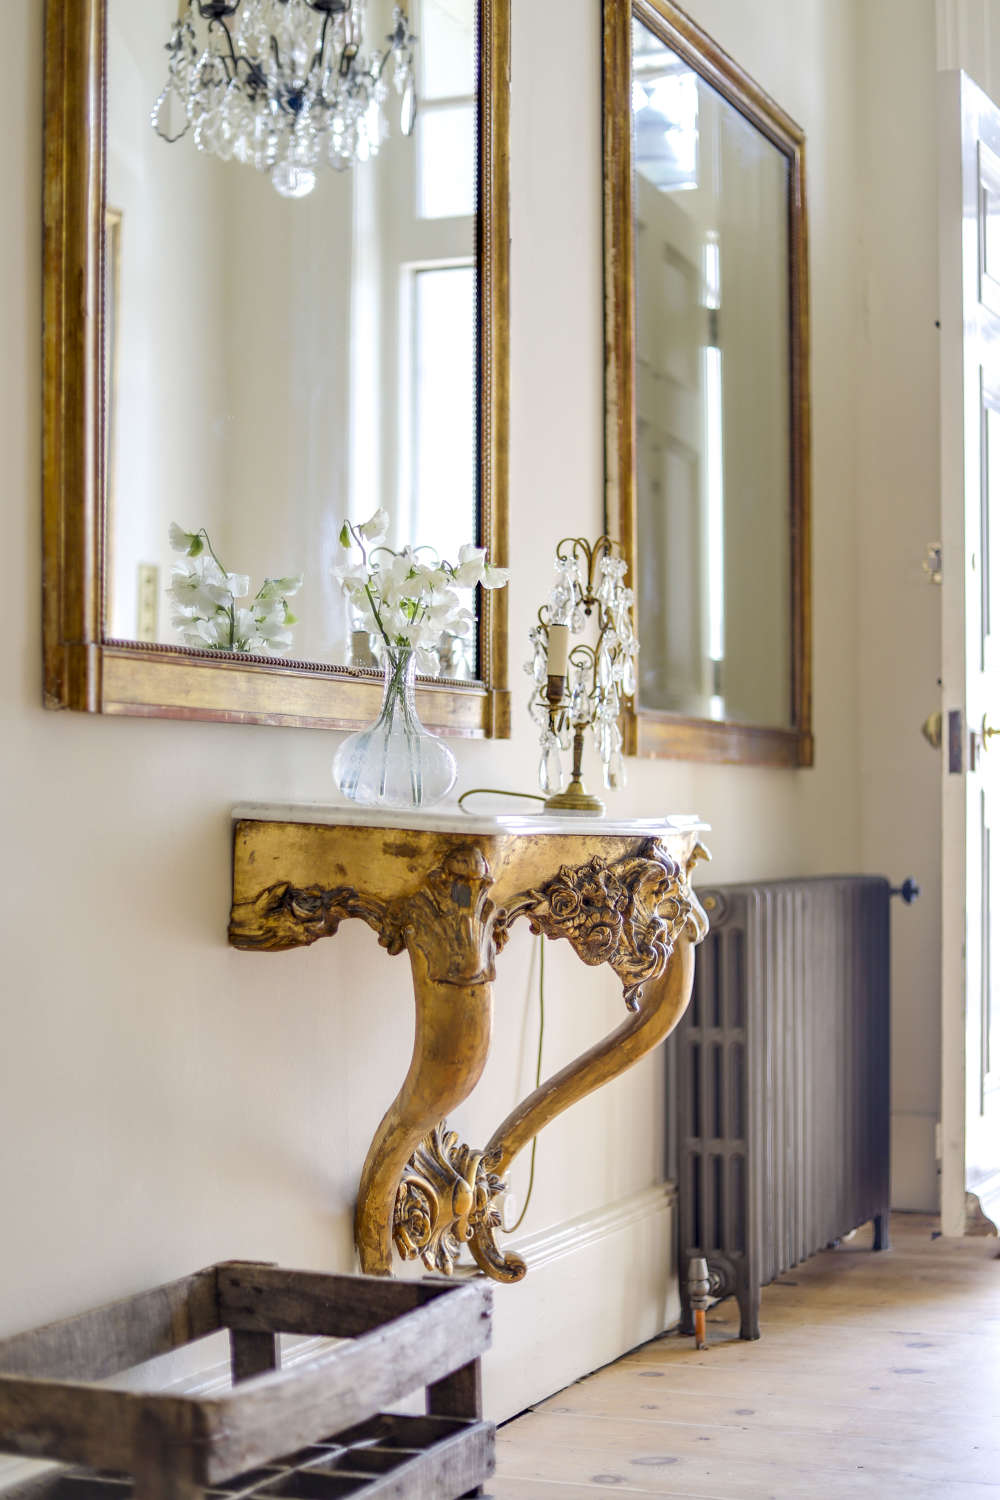 4 antique French gilt bistro mirrors - mercury glass